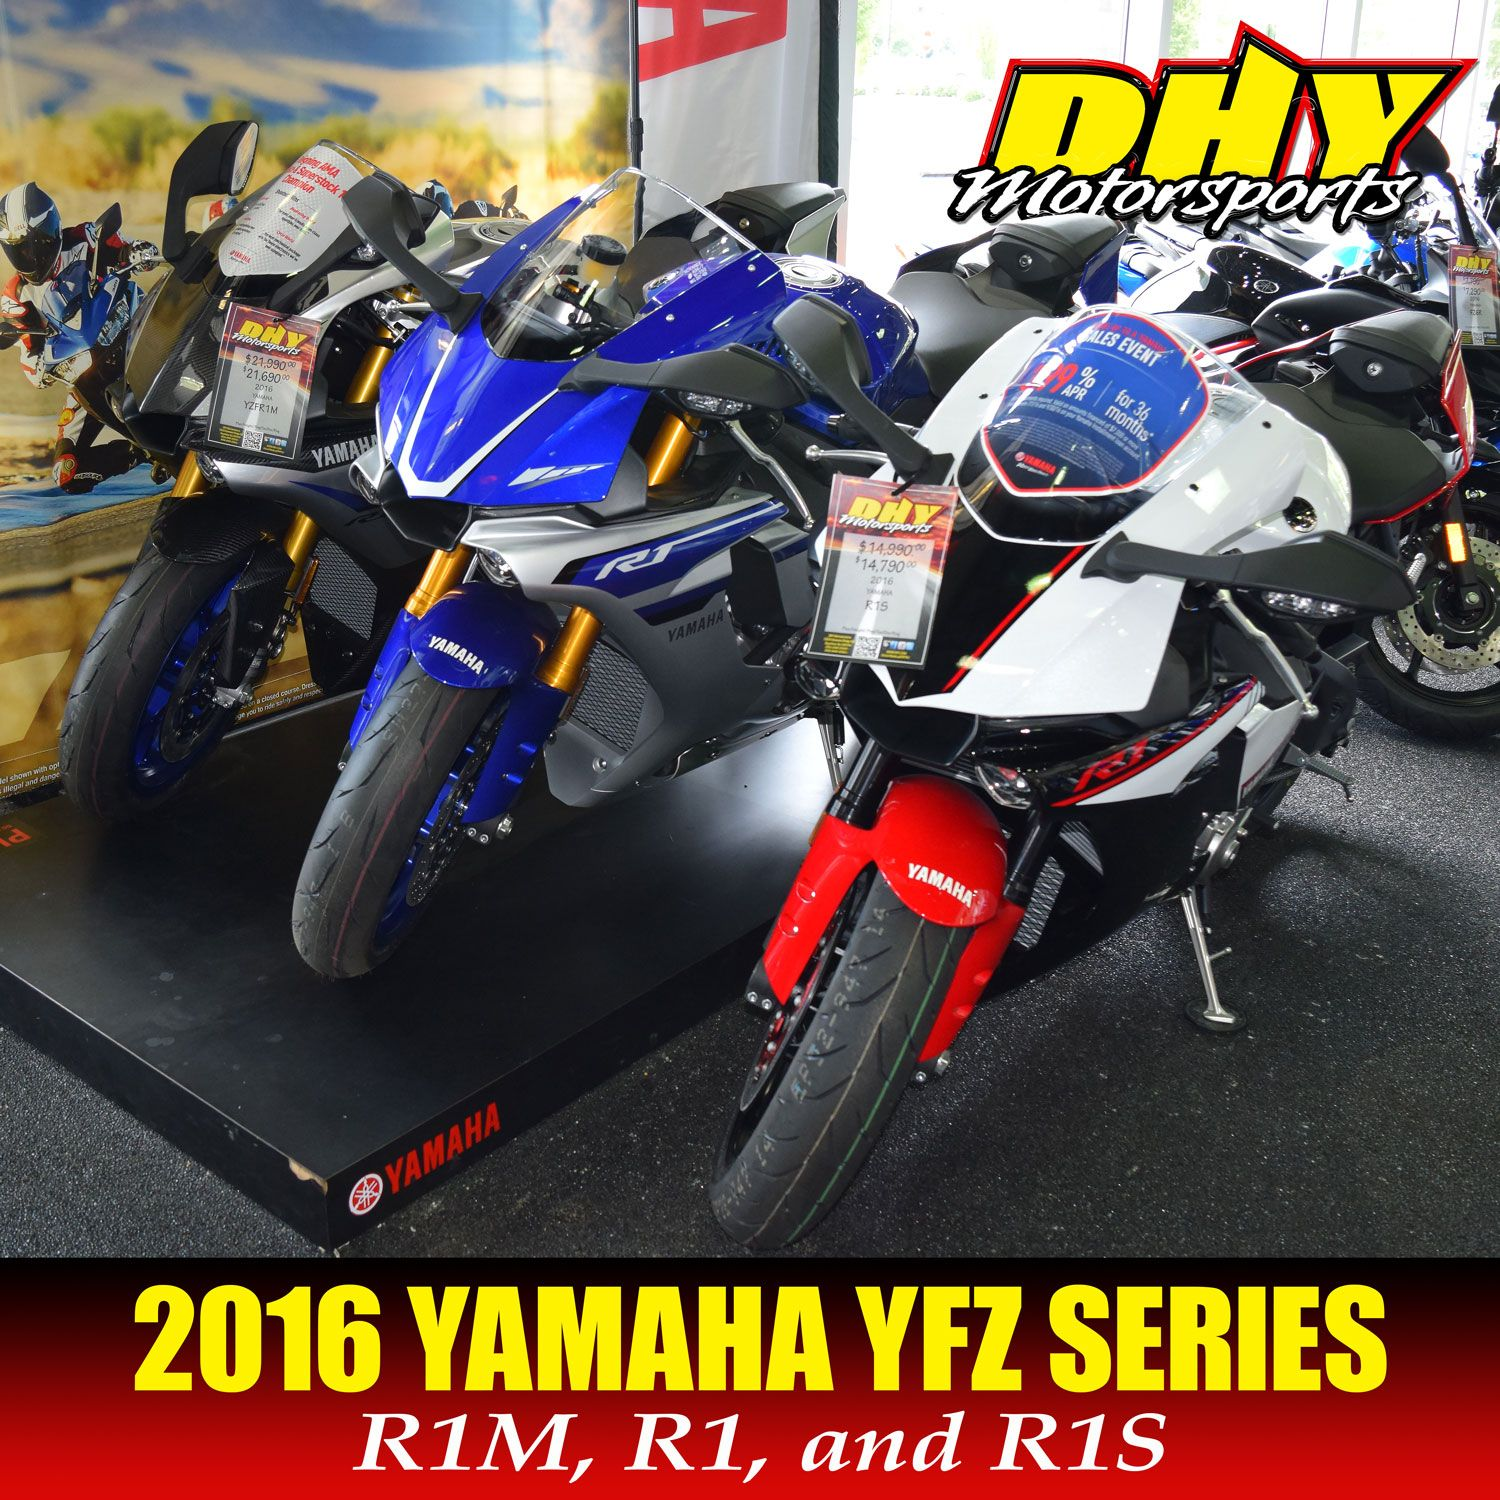 Great deals on Yamaha Motor USA YFZ series #supersport bikes; #R1S was $14,999 now $12,888; #R1 was $16,490 and $14,488; #R1M was $21,990 now $20,788.